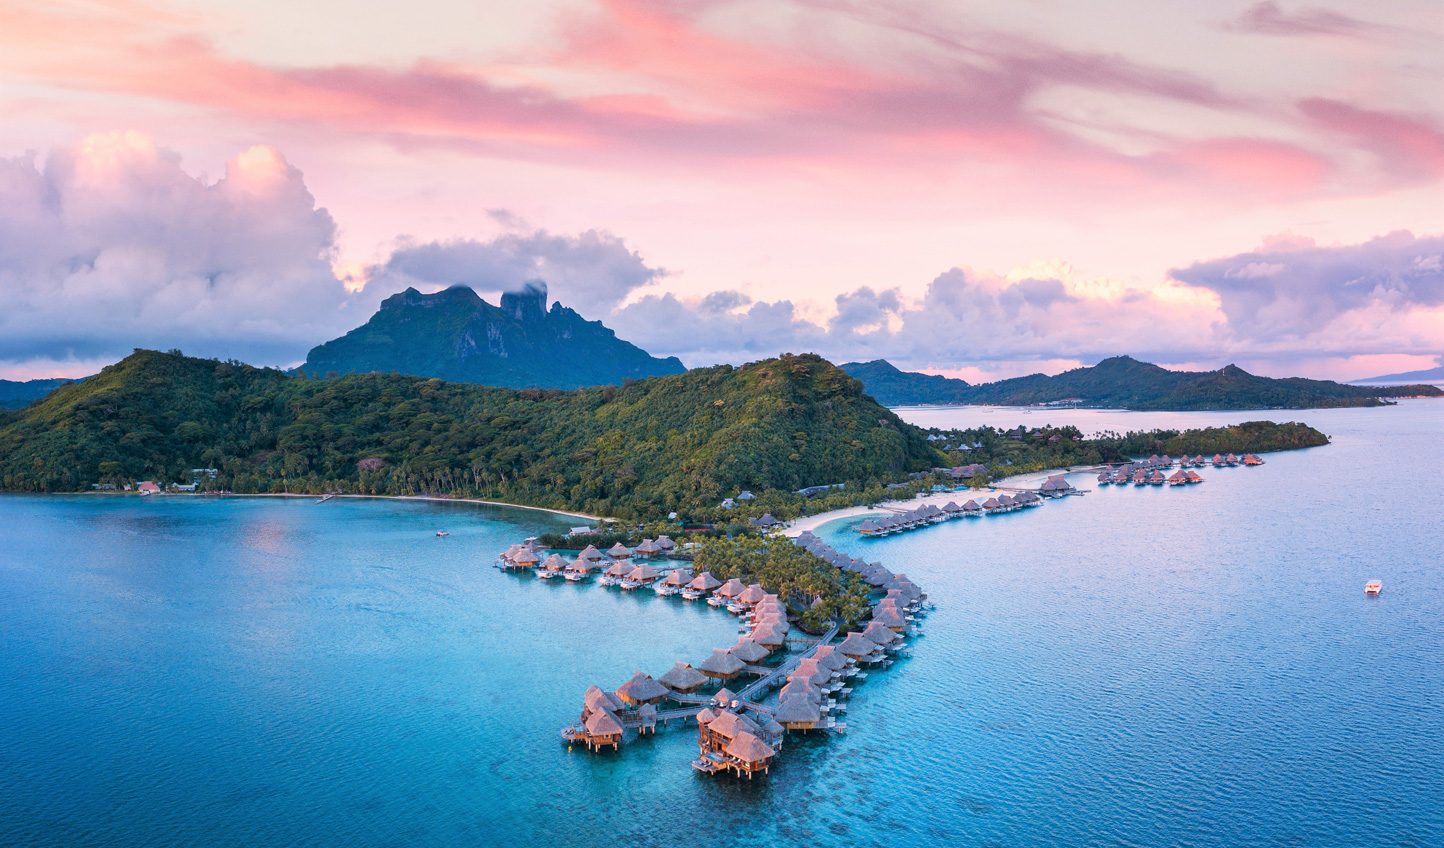 Escape to a secluded corner of Bora Bora at Conrad Bora Bora Nui